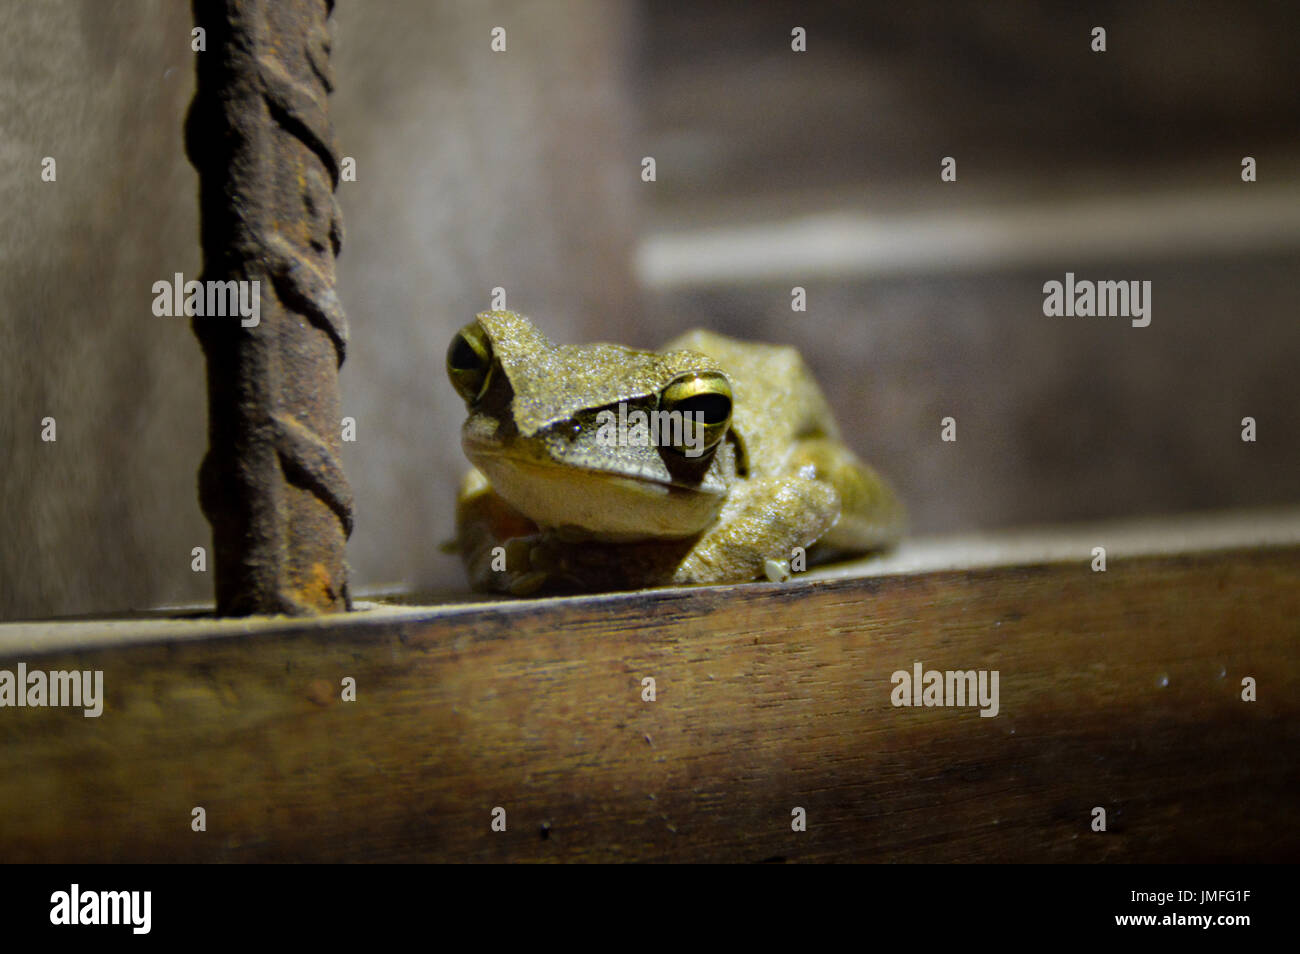 cute frog - Stock Image